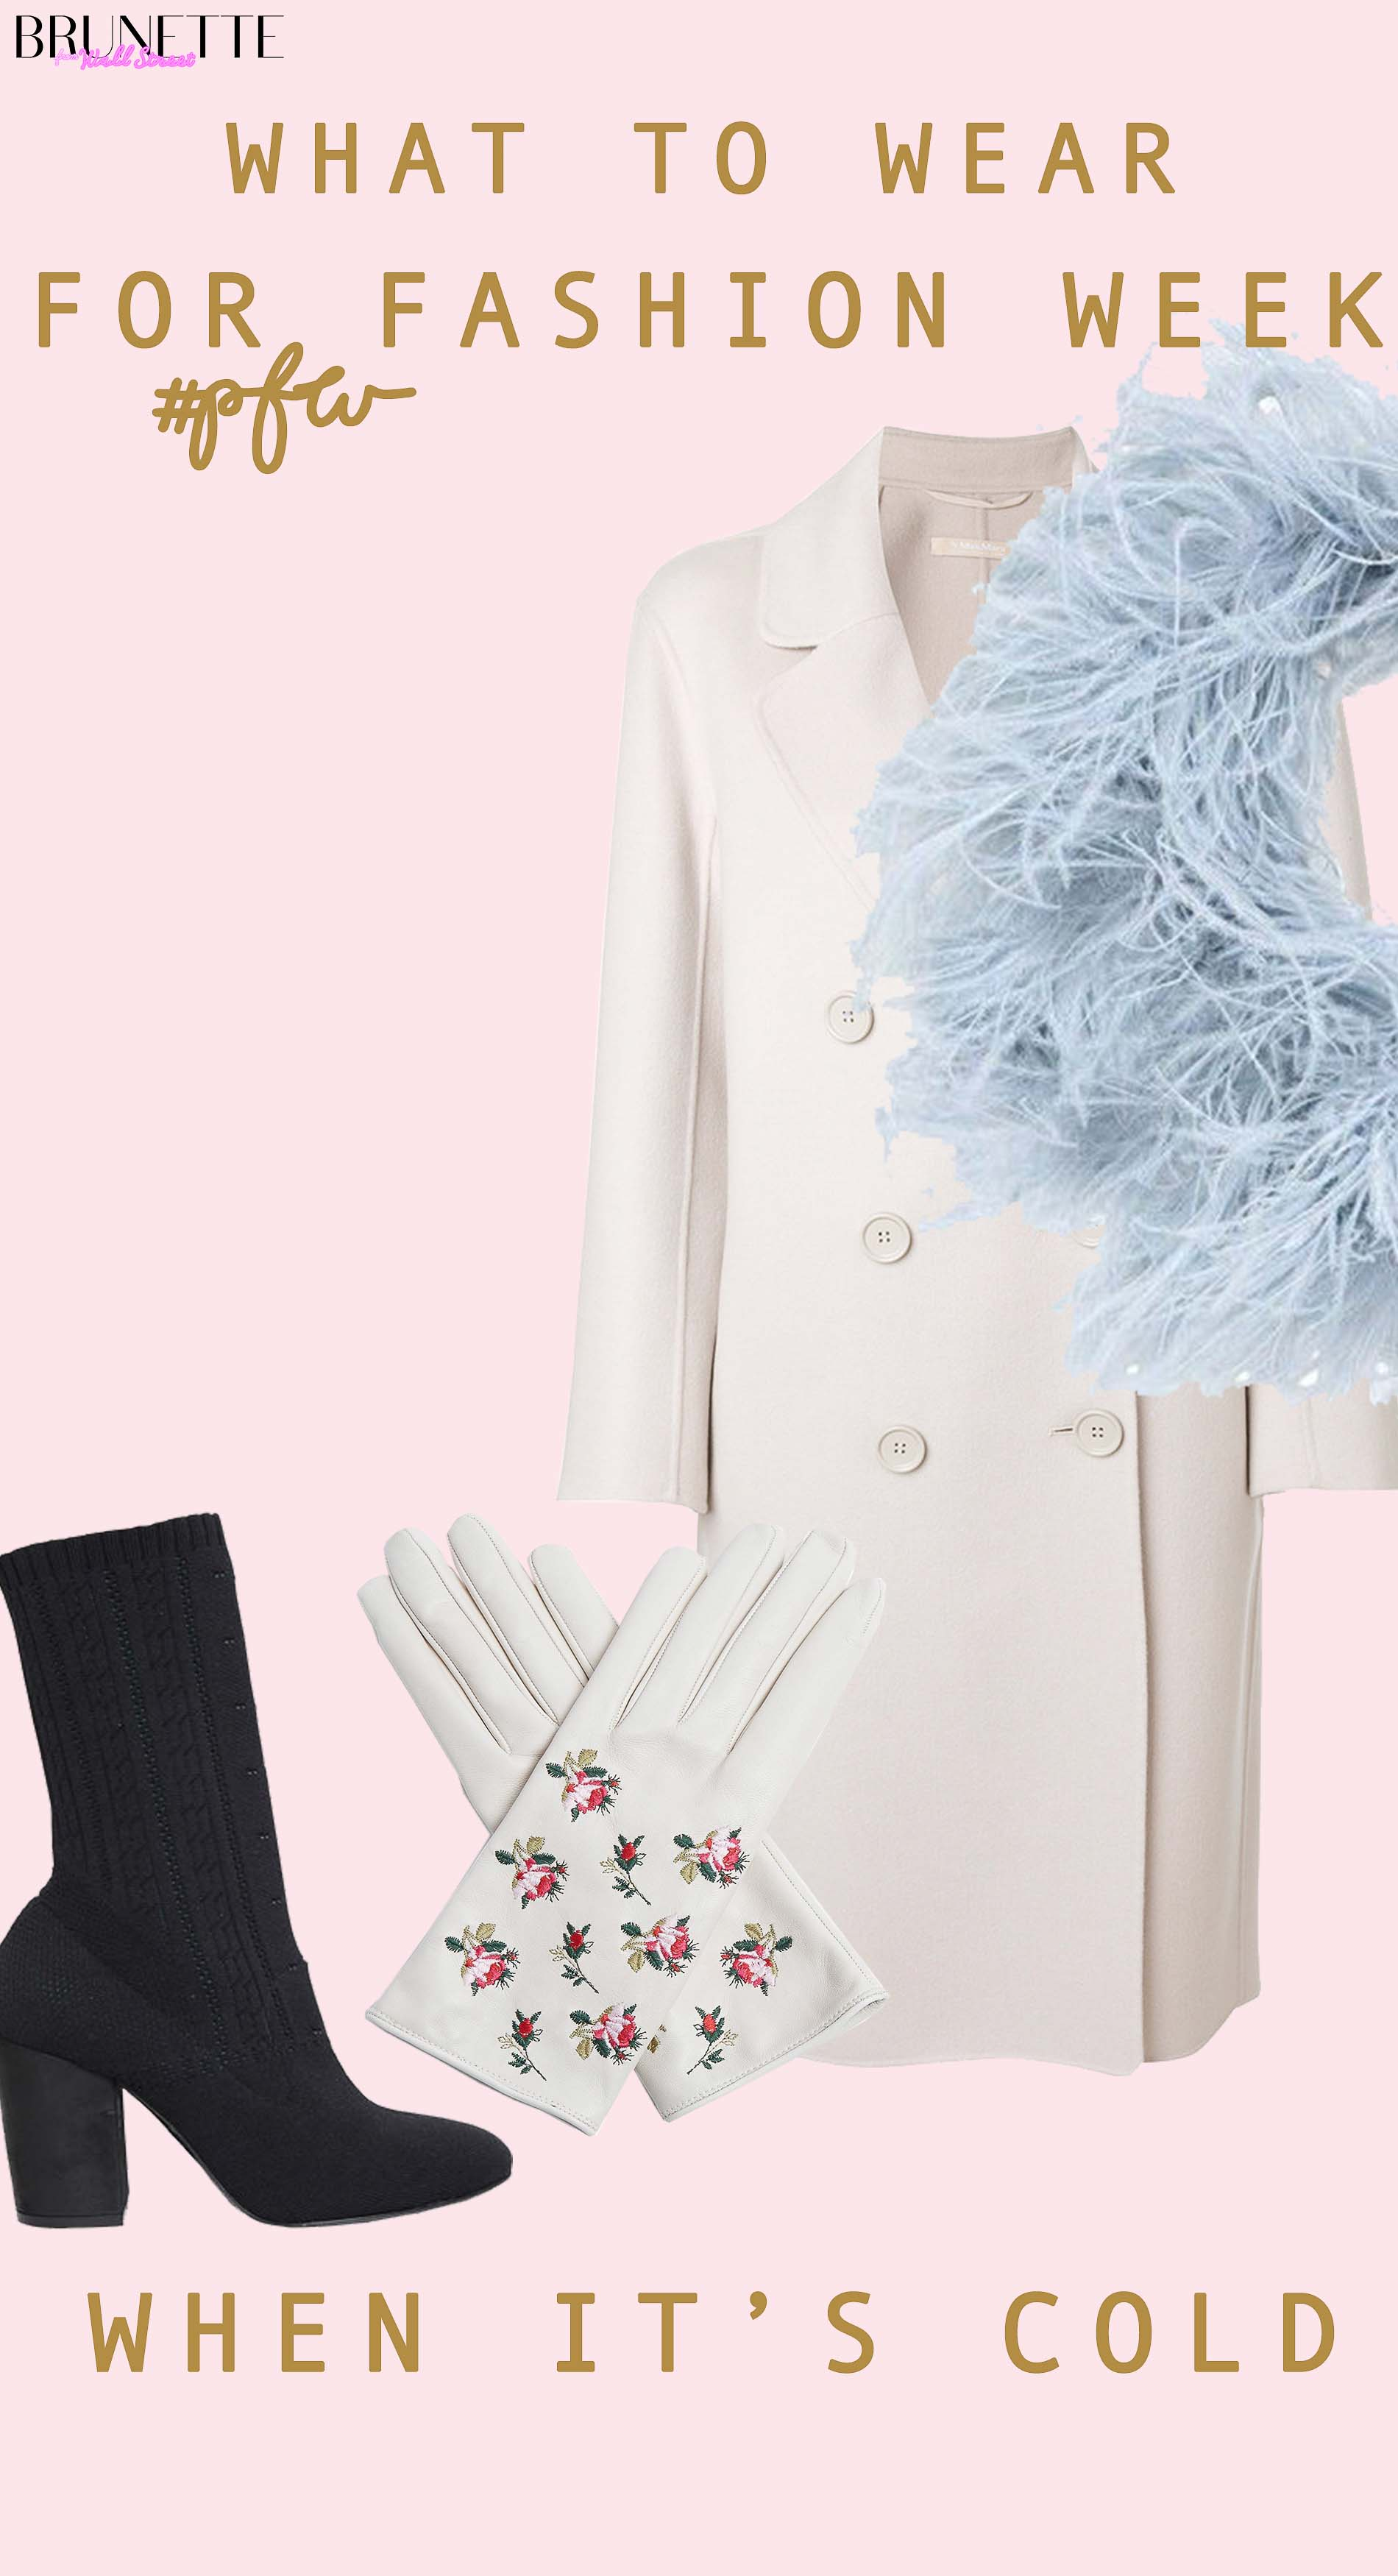 Weekend MAxmara coat, sock boots, feathers and leather gloves with text overlay What to wear for fashion week when it's cold